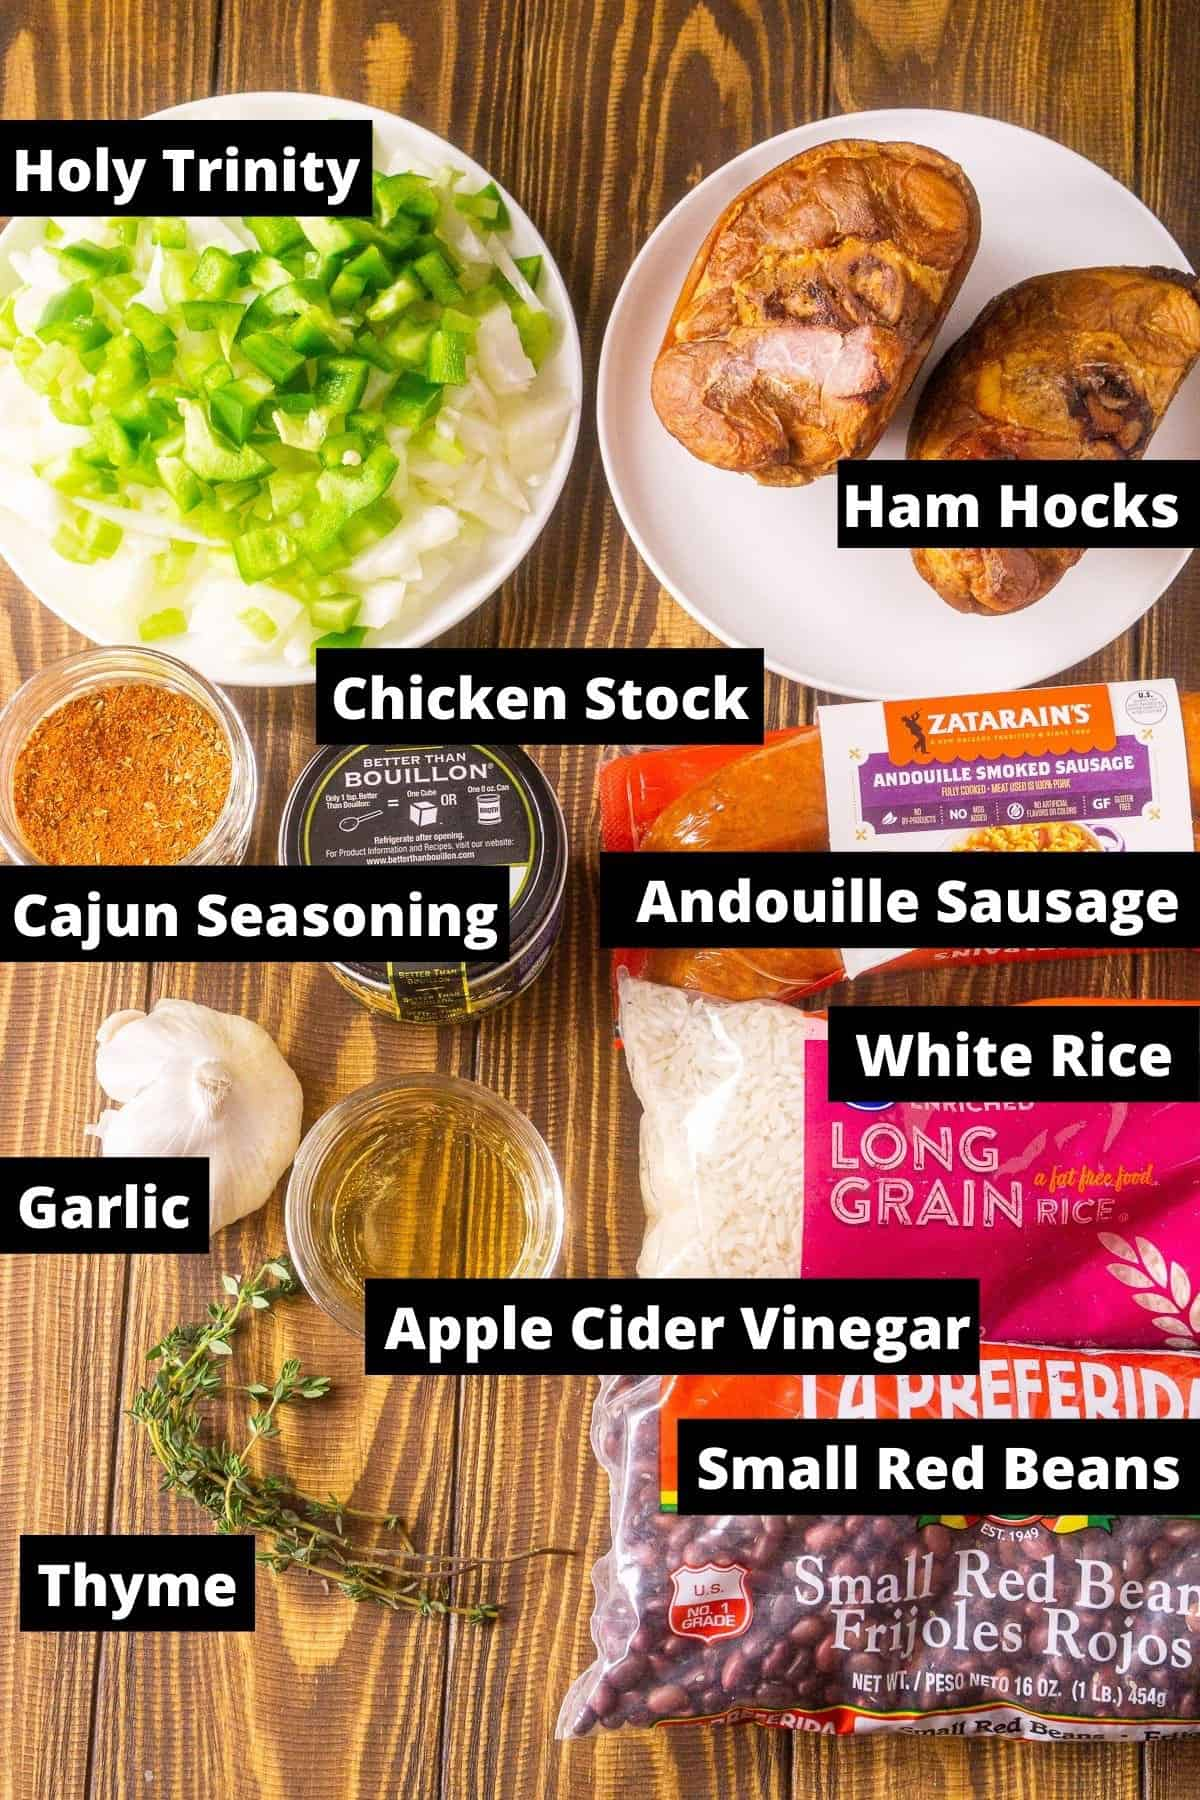 The Instant Pot red beans and rice ingredients with black and white labels on a wooden board.